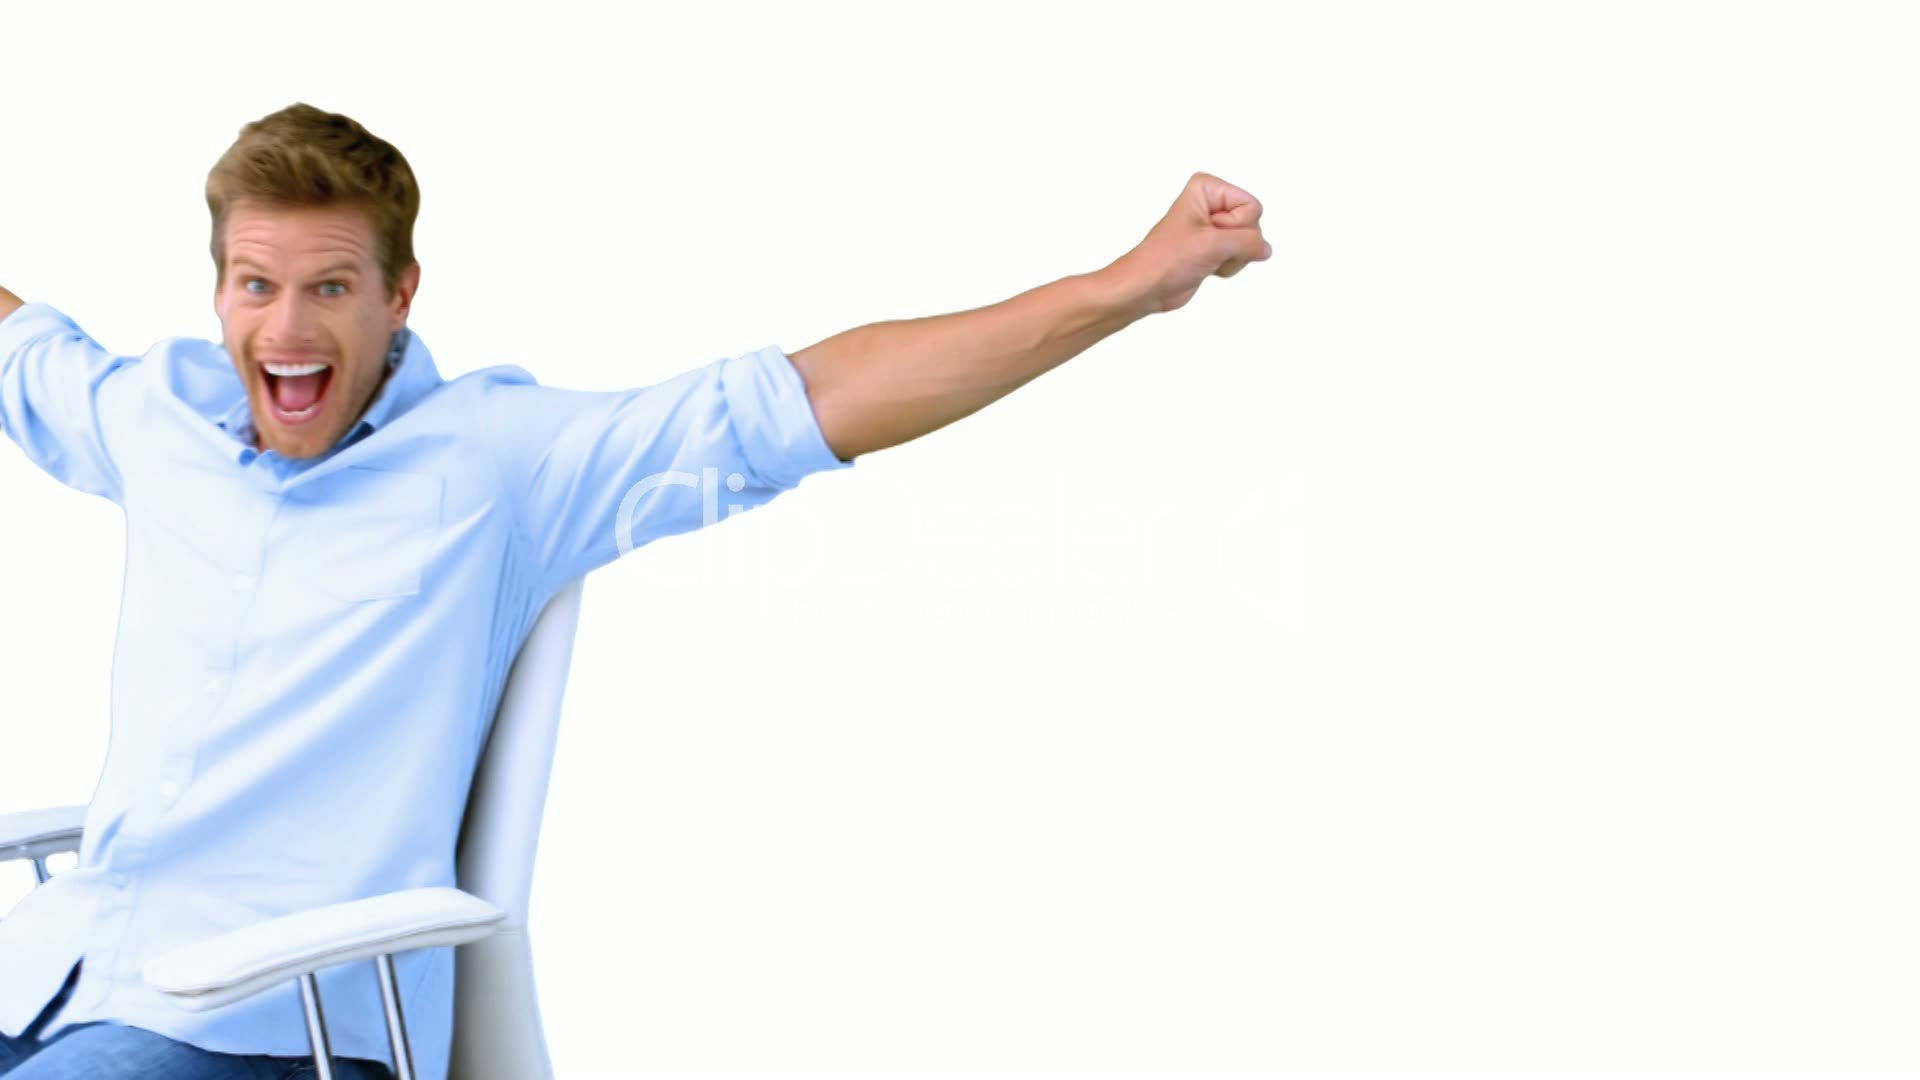 Man on swivel chair raising arms to show his success on